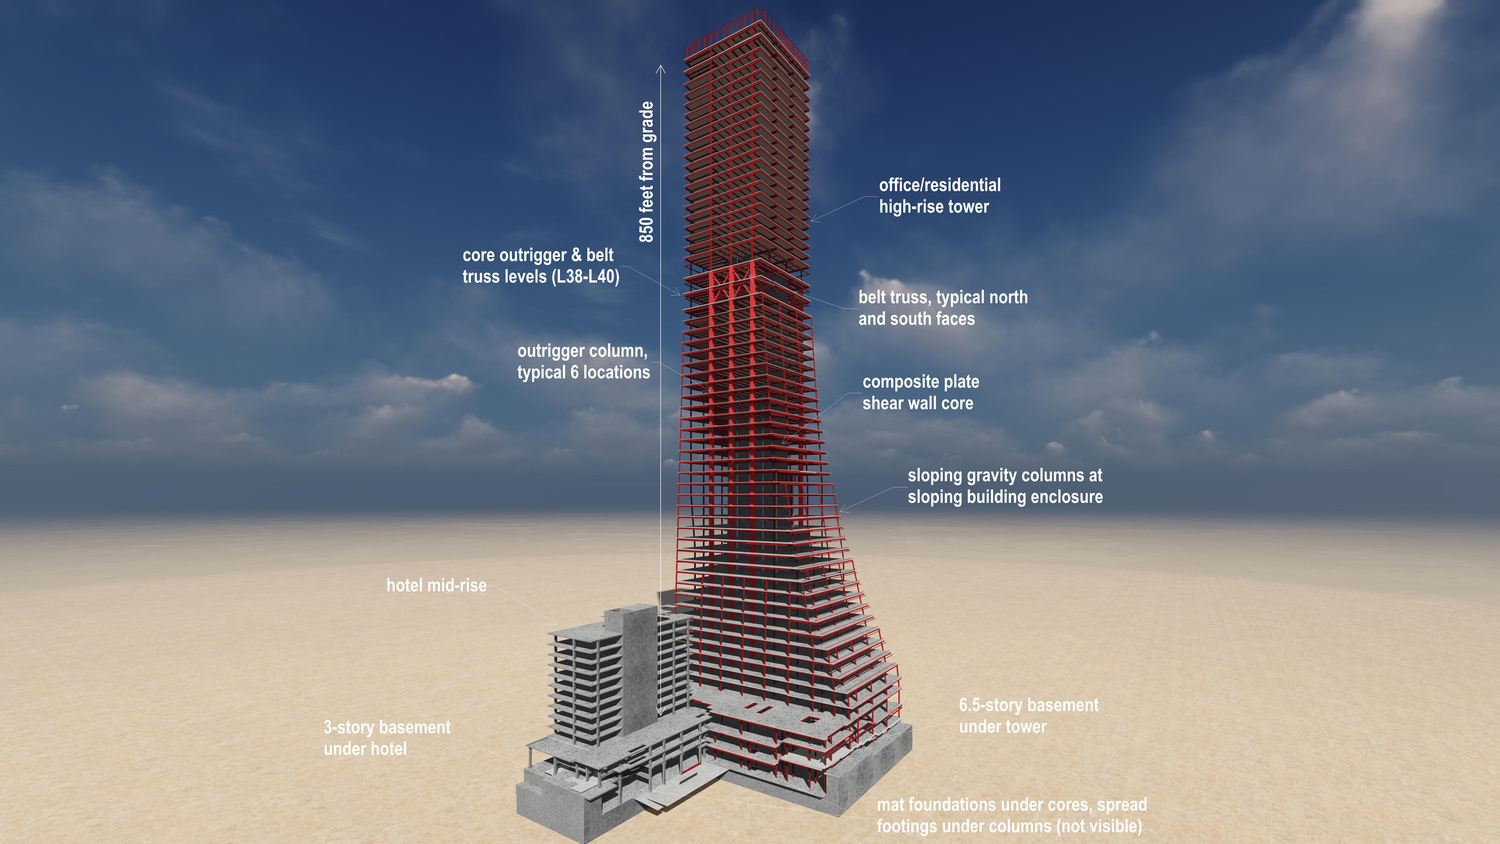 Structural engineer speeds skyscraper construction with novel